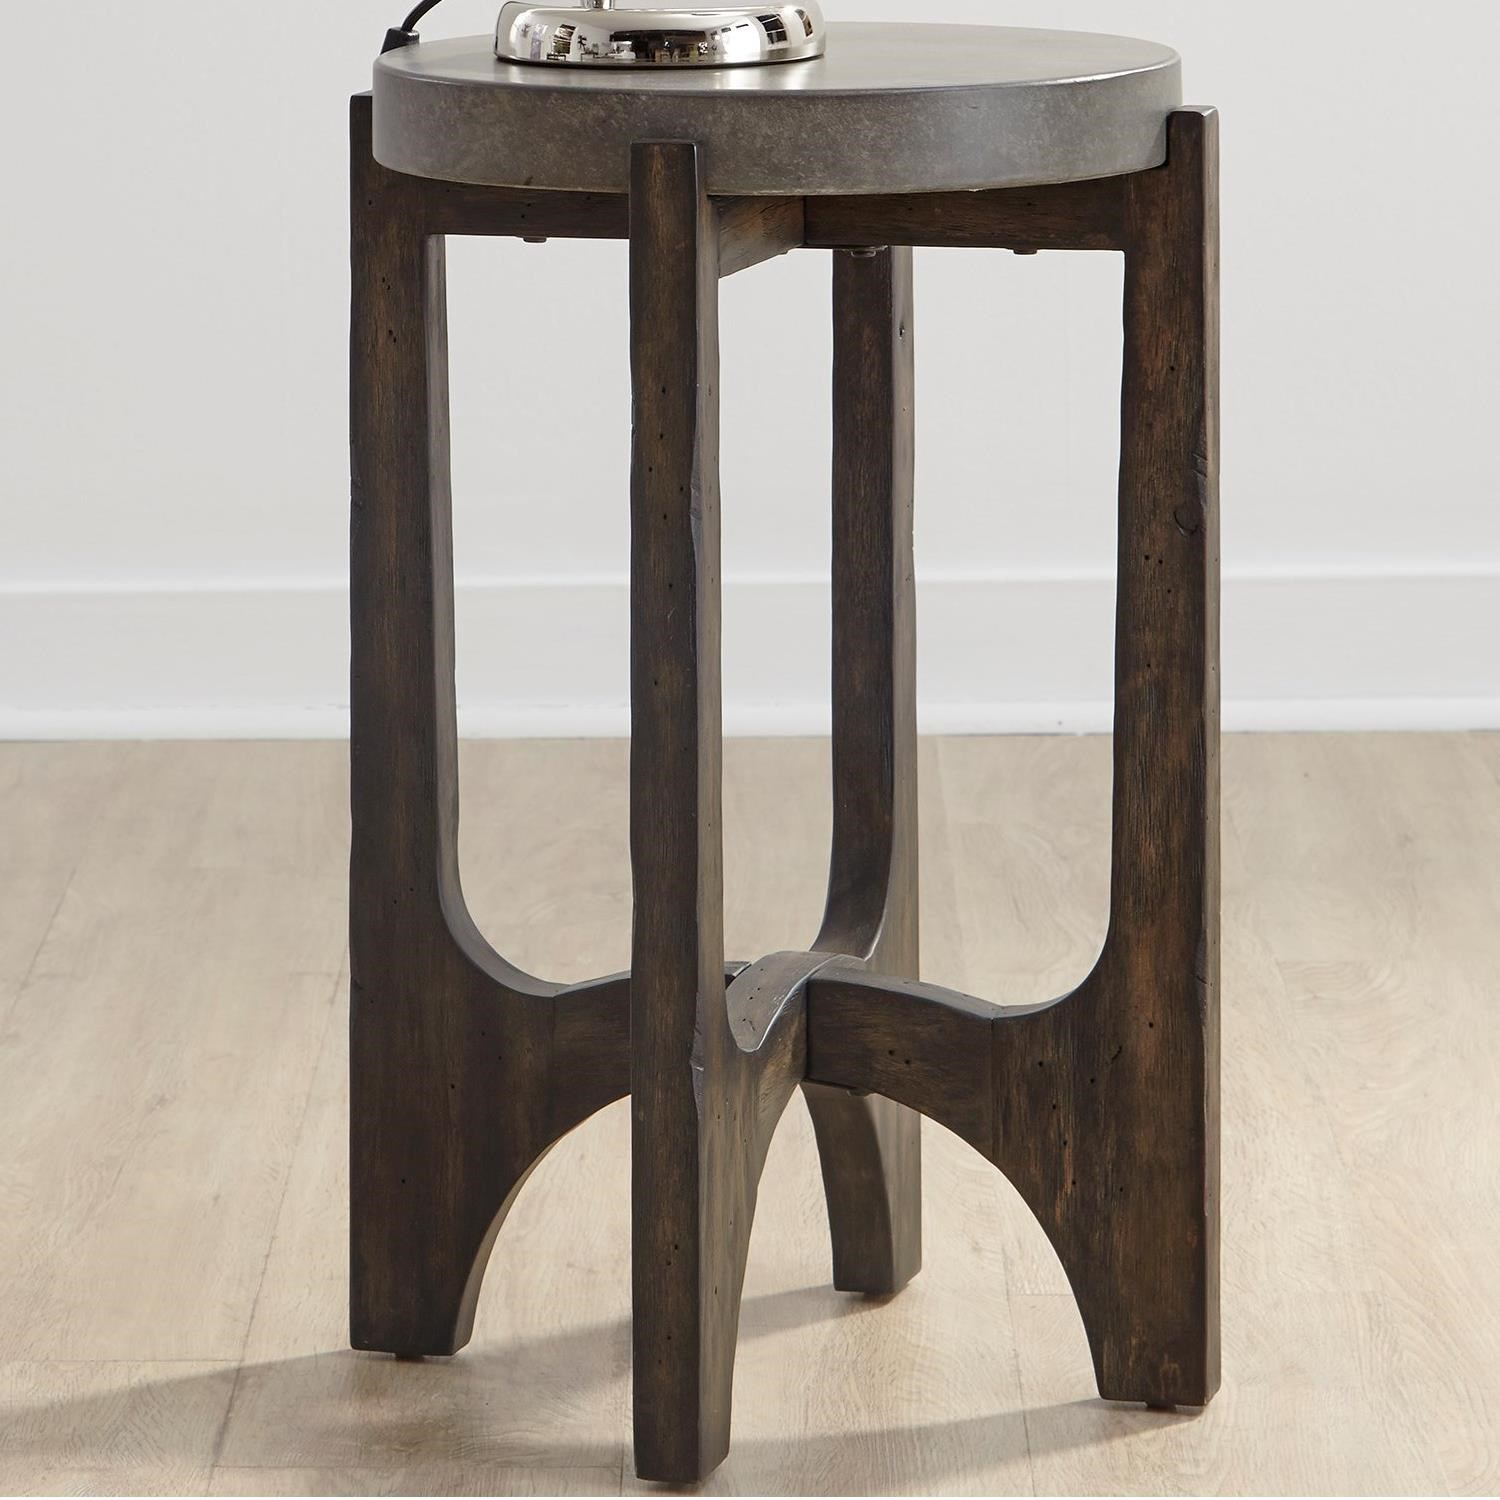 Modern Chairside Table Liberty Furniture Cascade Contemporary Chairside Table